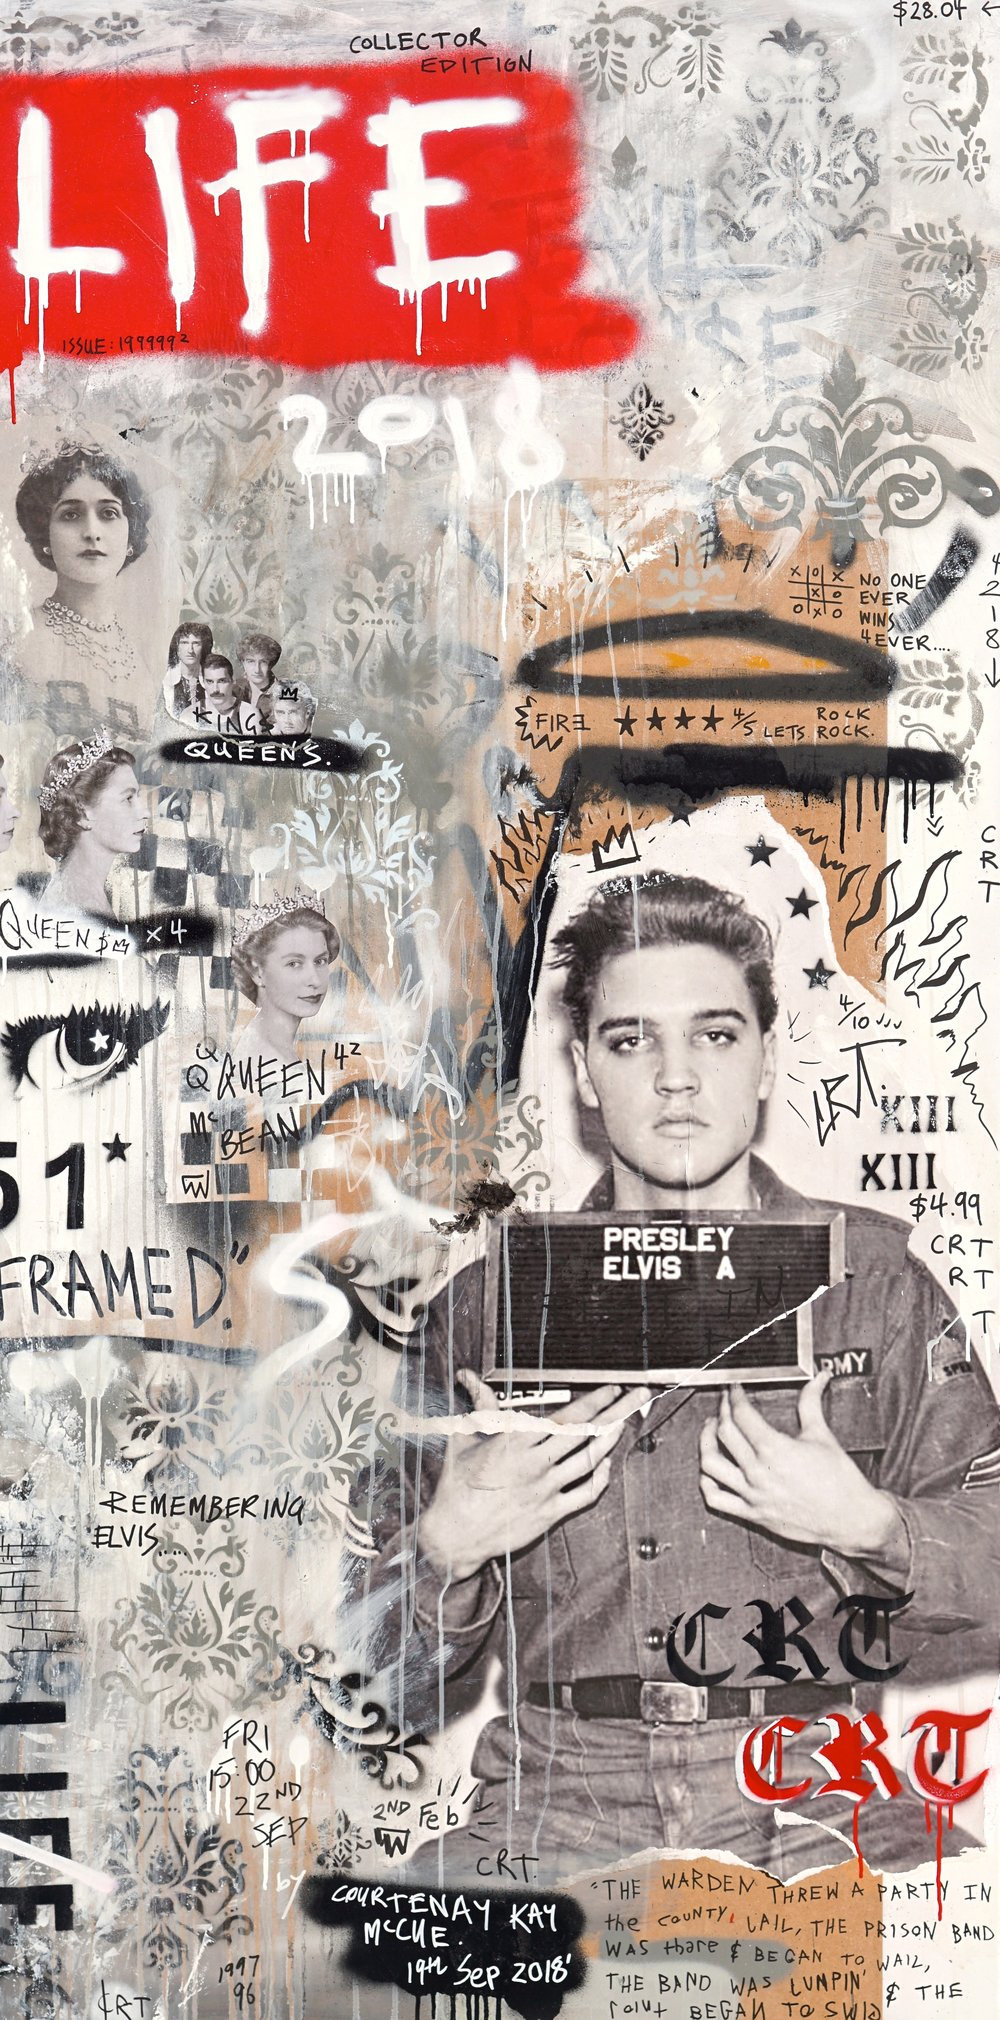 Remembering Elvis  ' Crack Rock n' Death Toll'  92cm x 182cm Spray, Acrylic and Collage on Board 2018  Sold